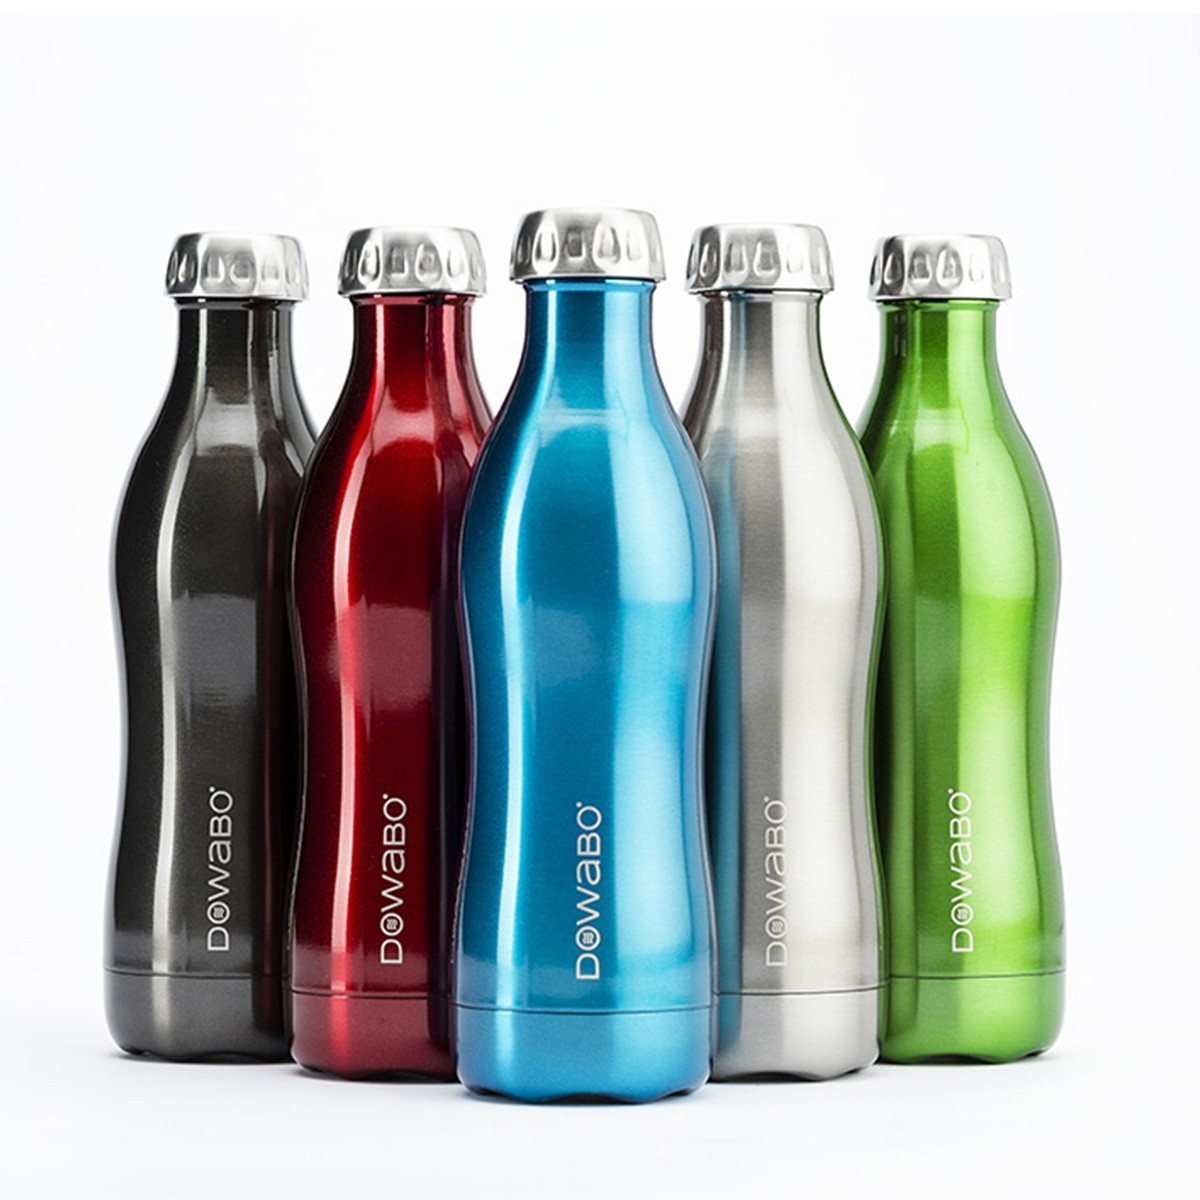 DOWABO® Bottle - Red 500ml Metallic Collection